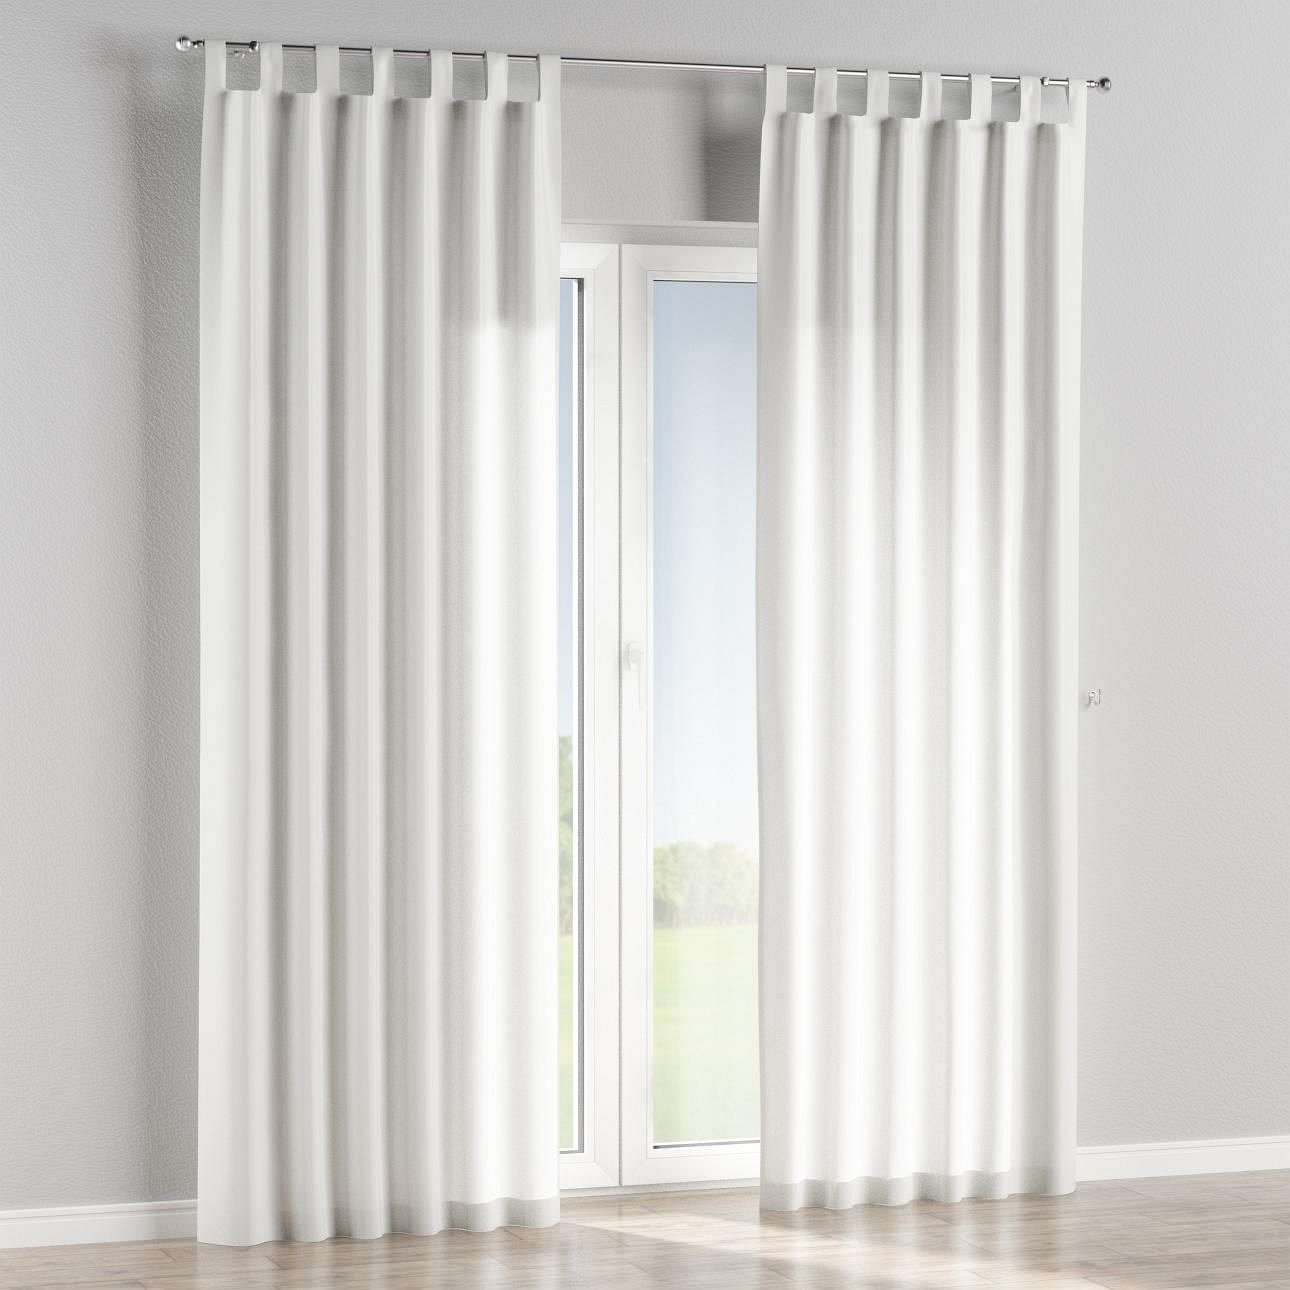 Tab top curtains in collection Ashley, fabric: 137-73